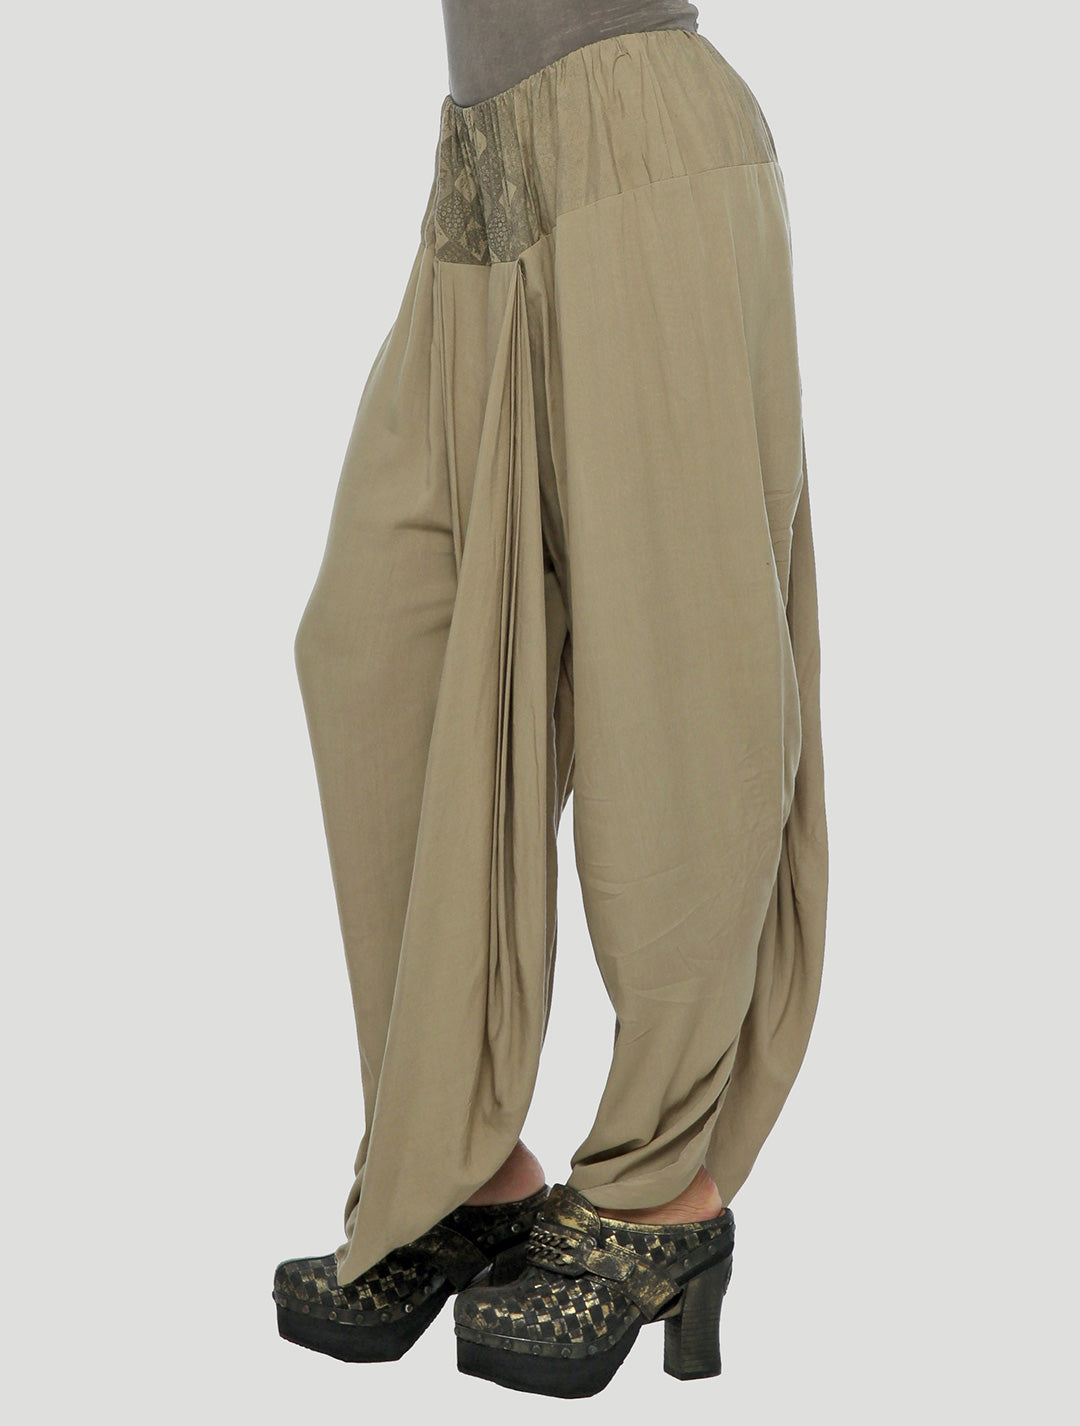 Psylo Fashion ethical alternative streetwear Harem Skirt Pants in camel beige